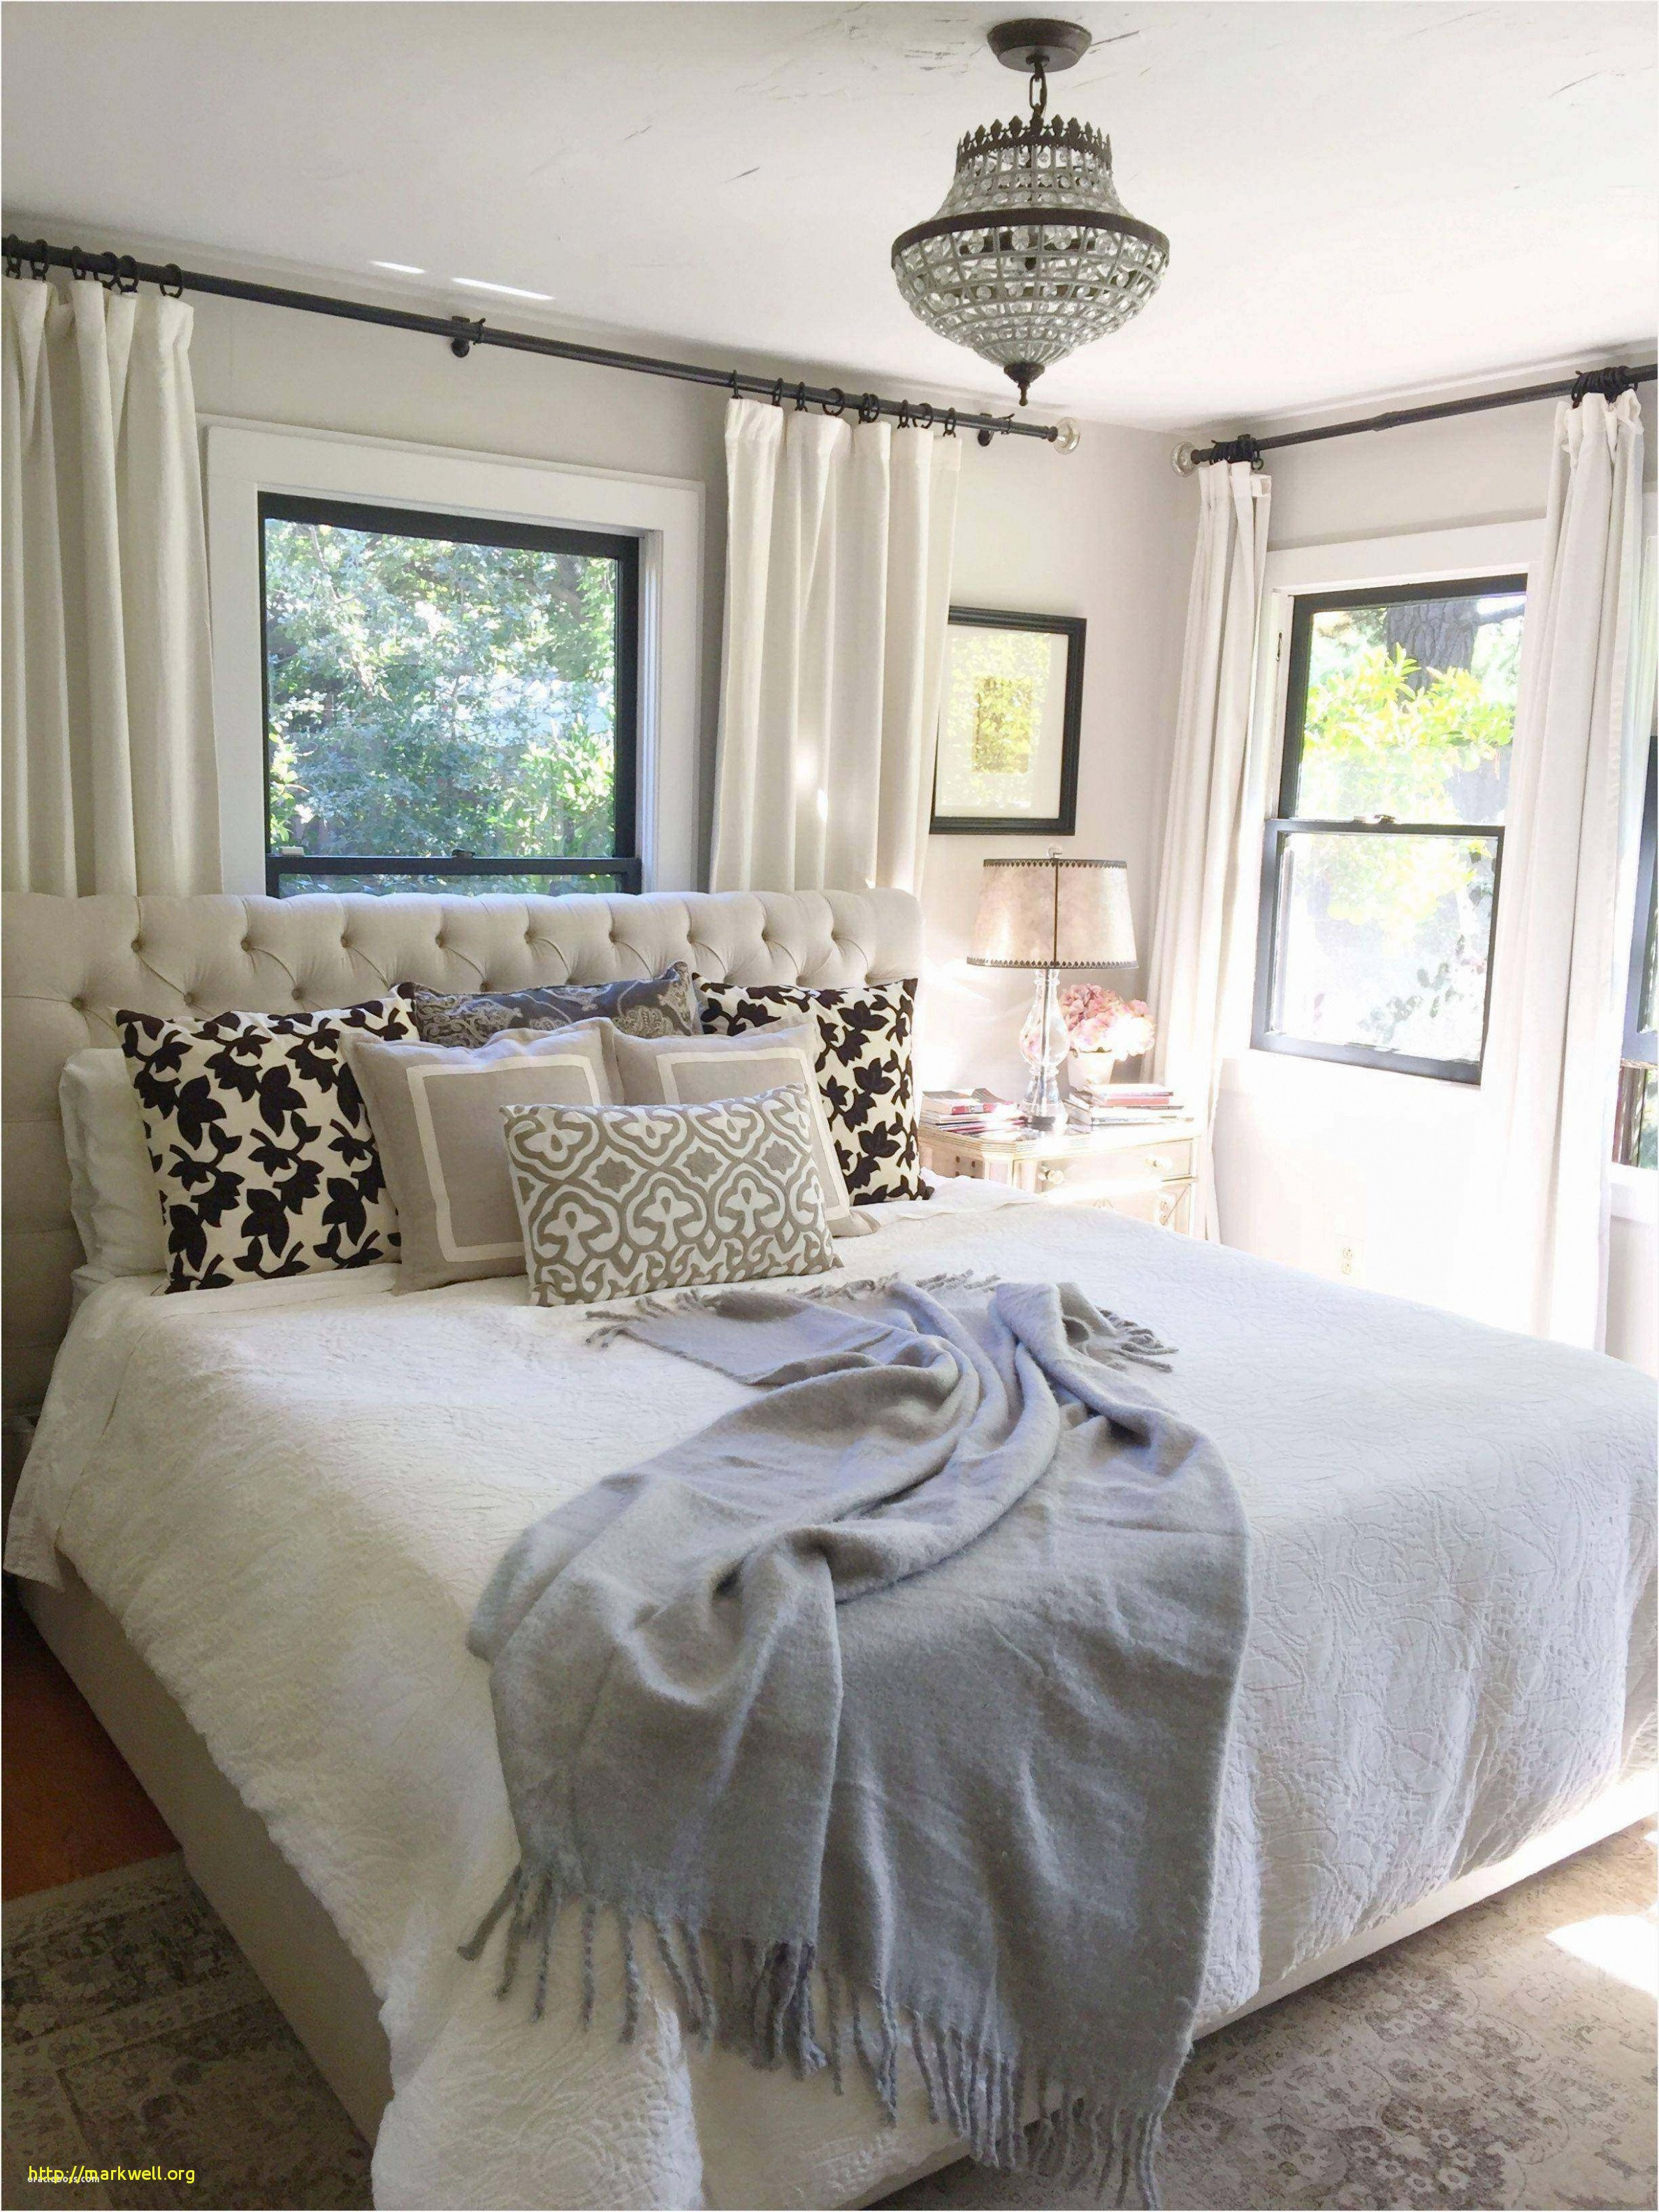 High Quality Bedroom Furniture Inspirational Elegant Cheap Bedroom Chairs